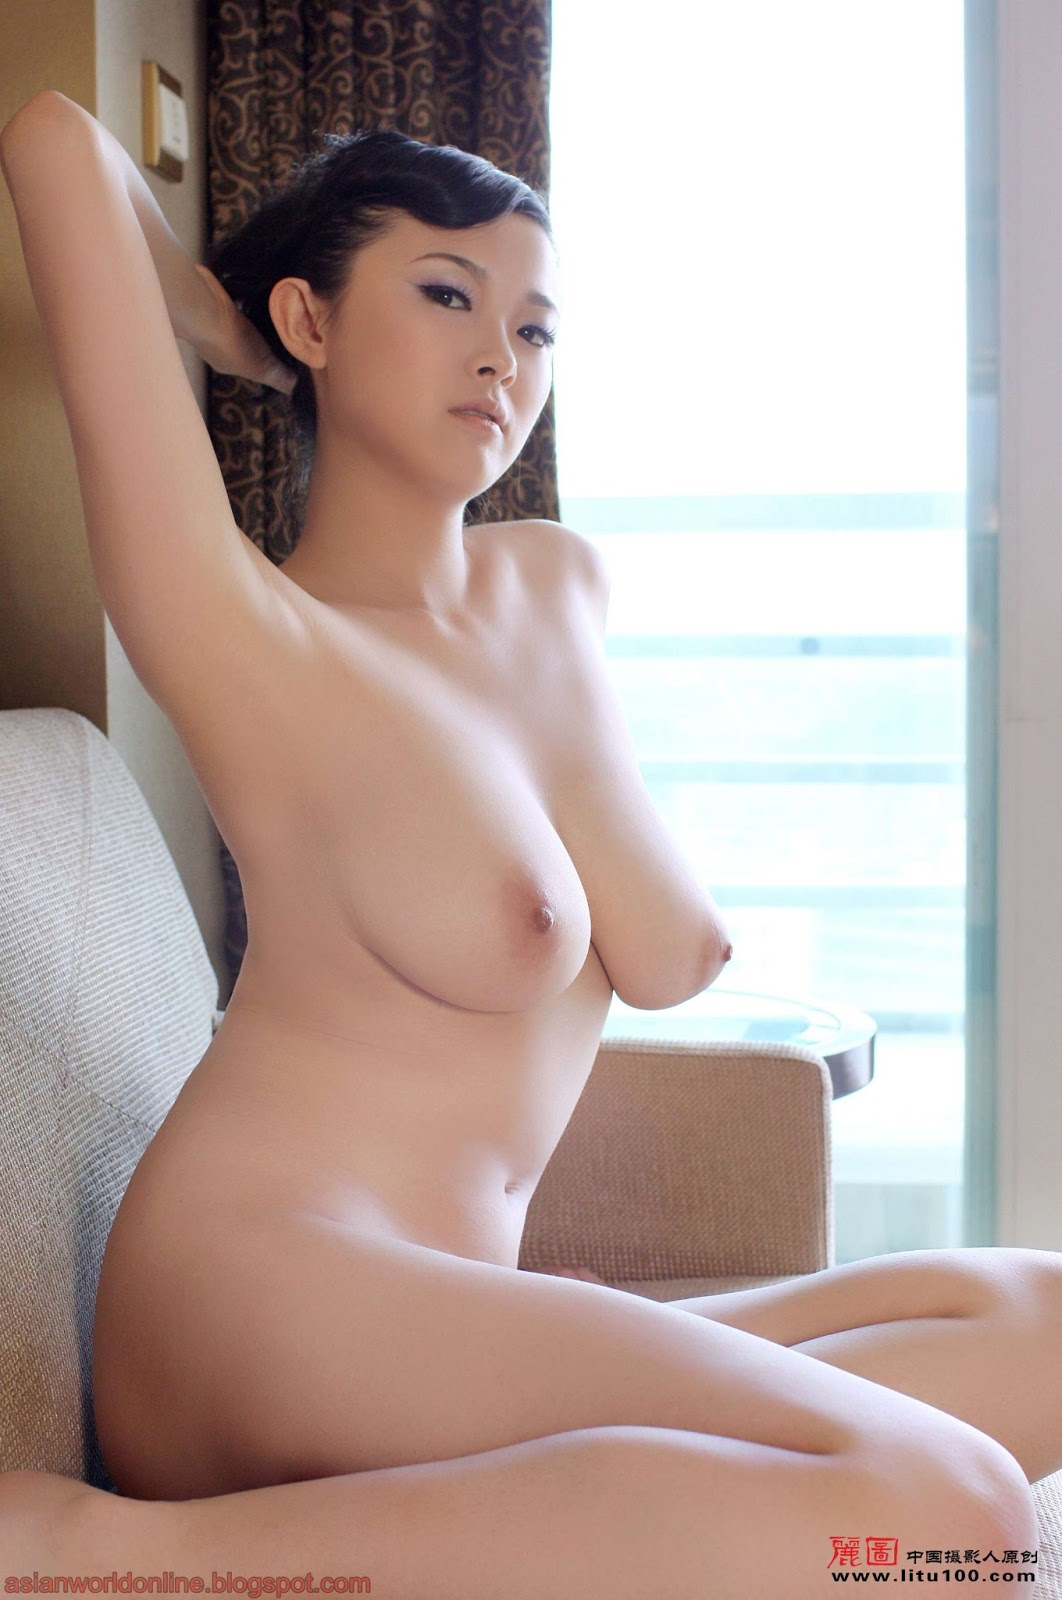 Asian Porn Blogspot 104